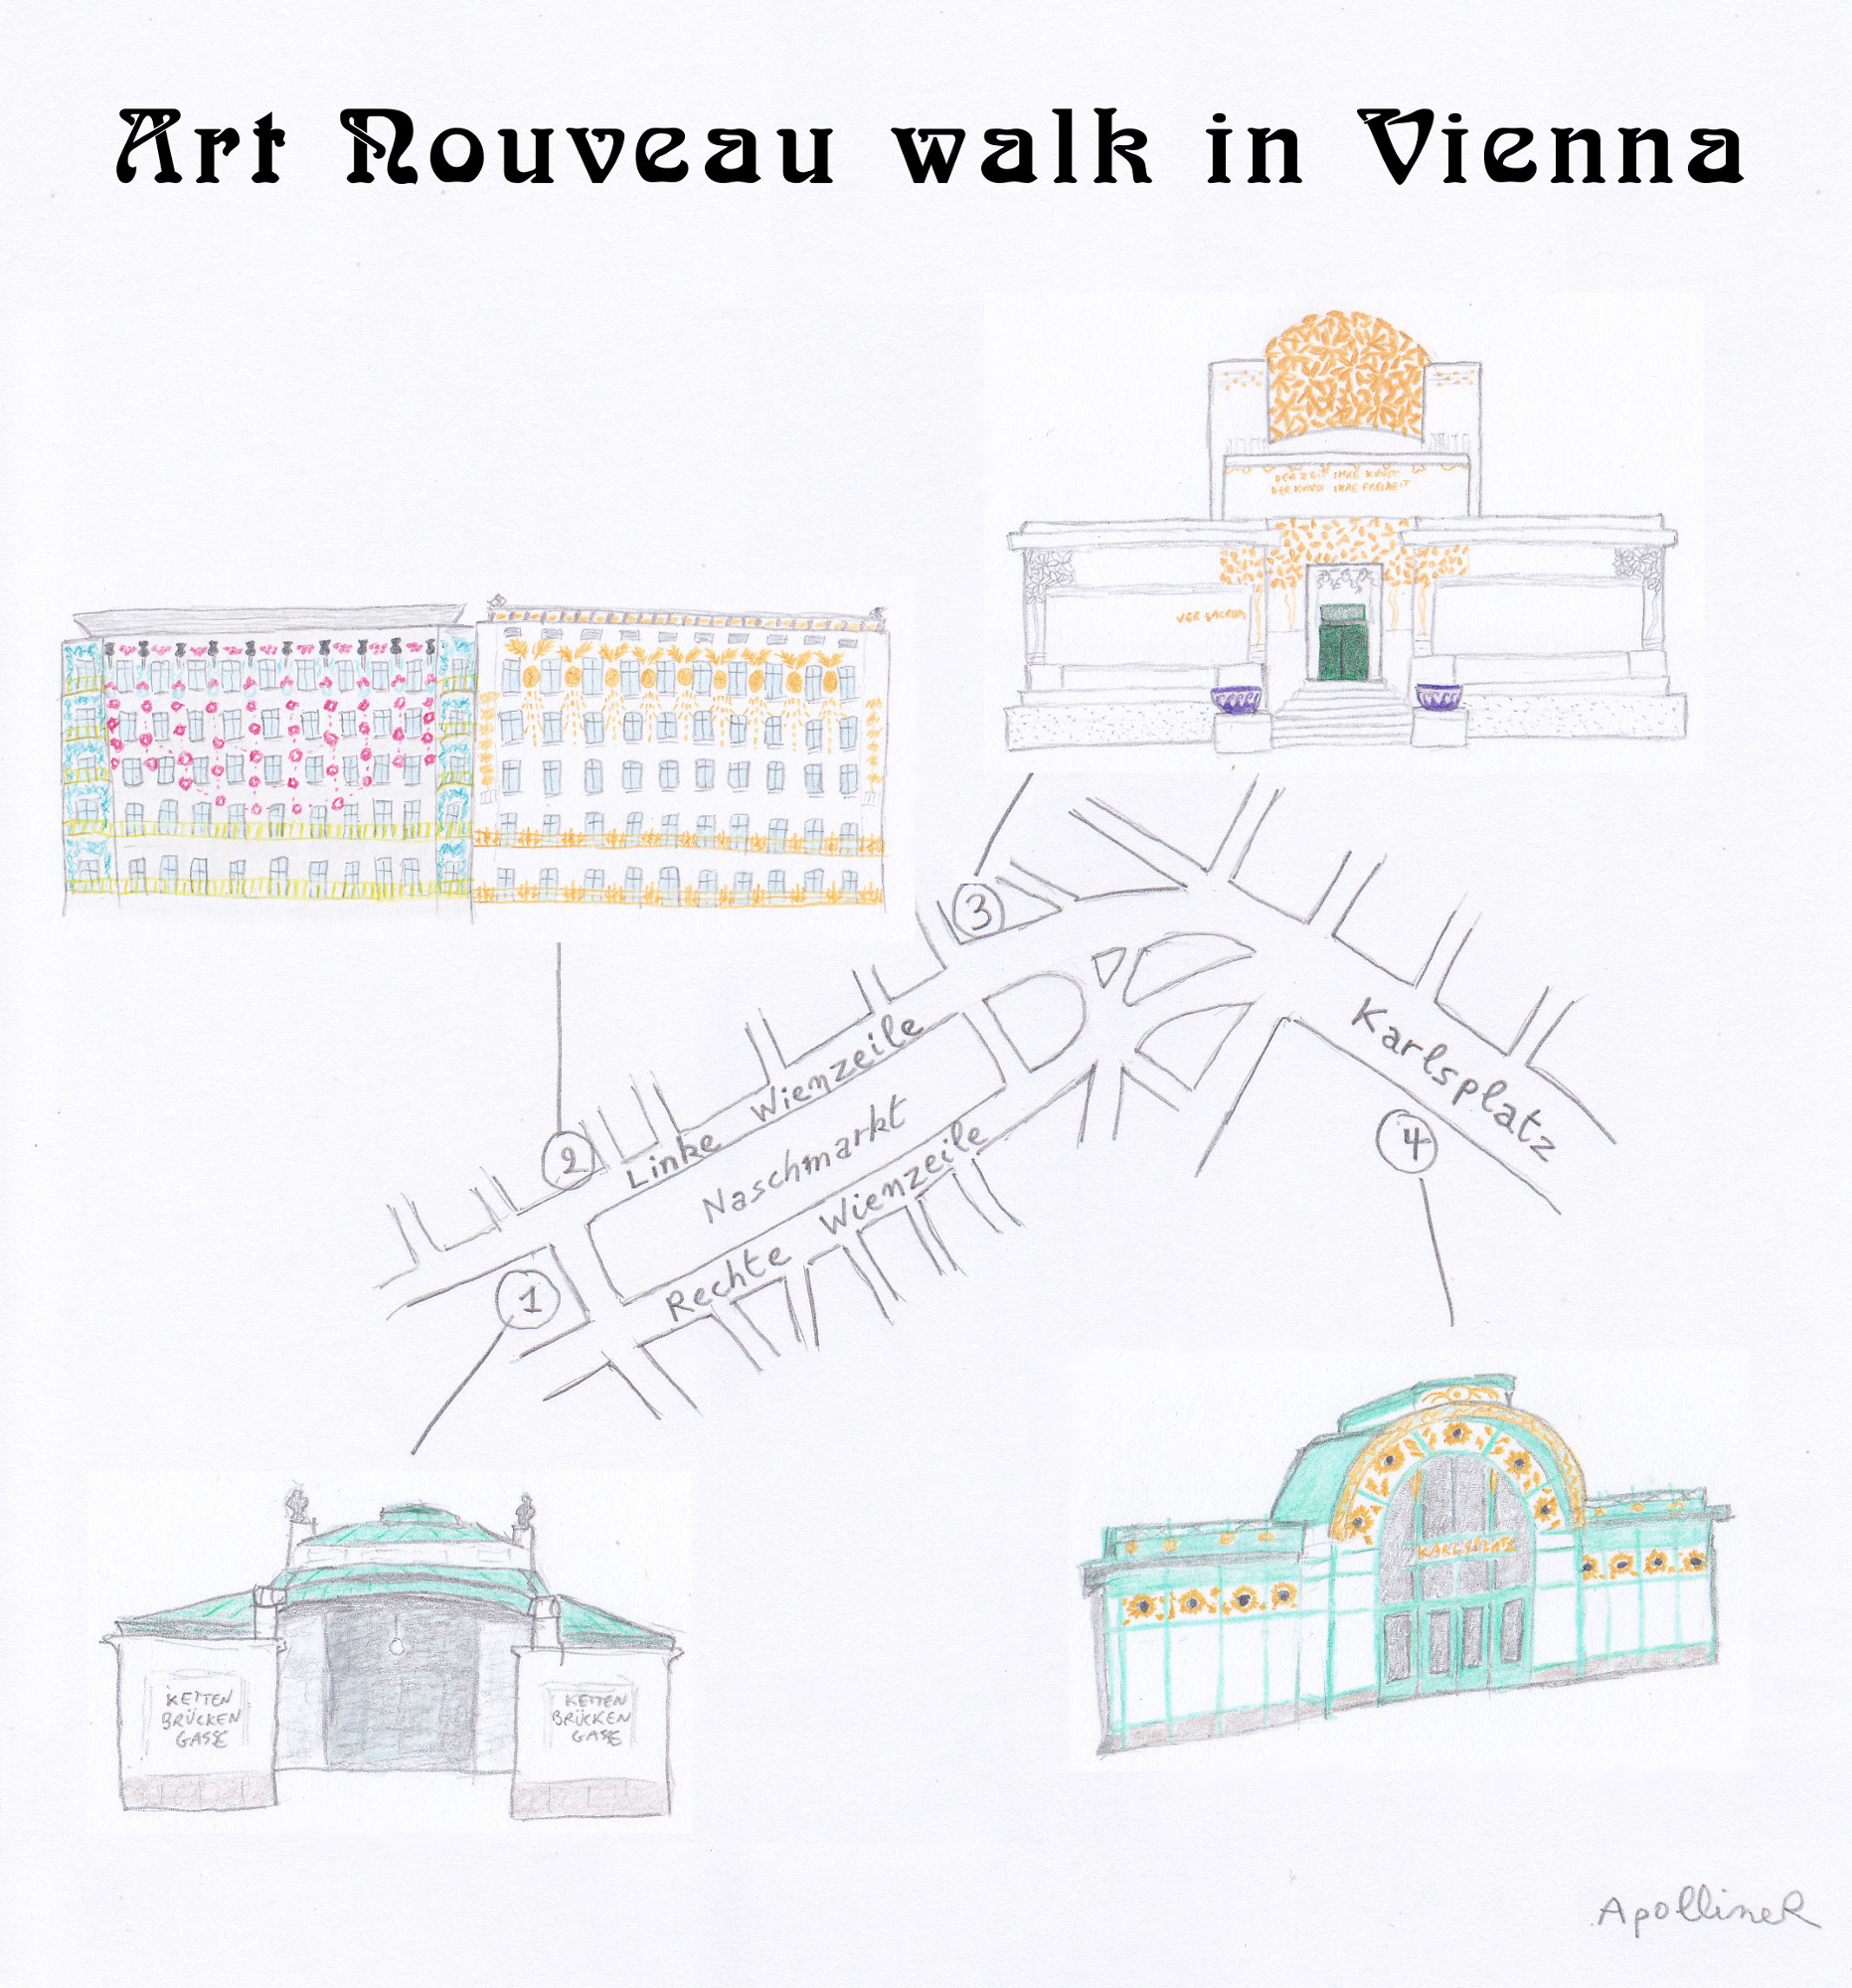 Itinerary of Art Nouveau walk in Vienna